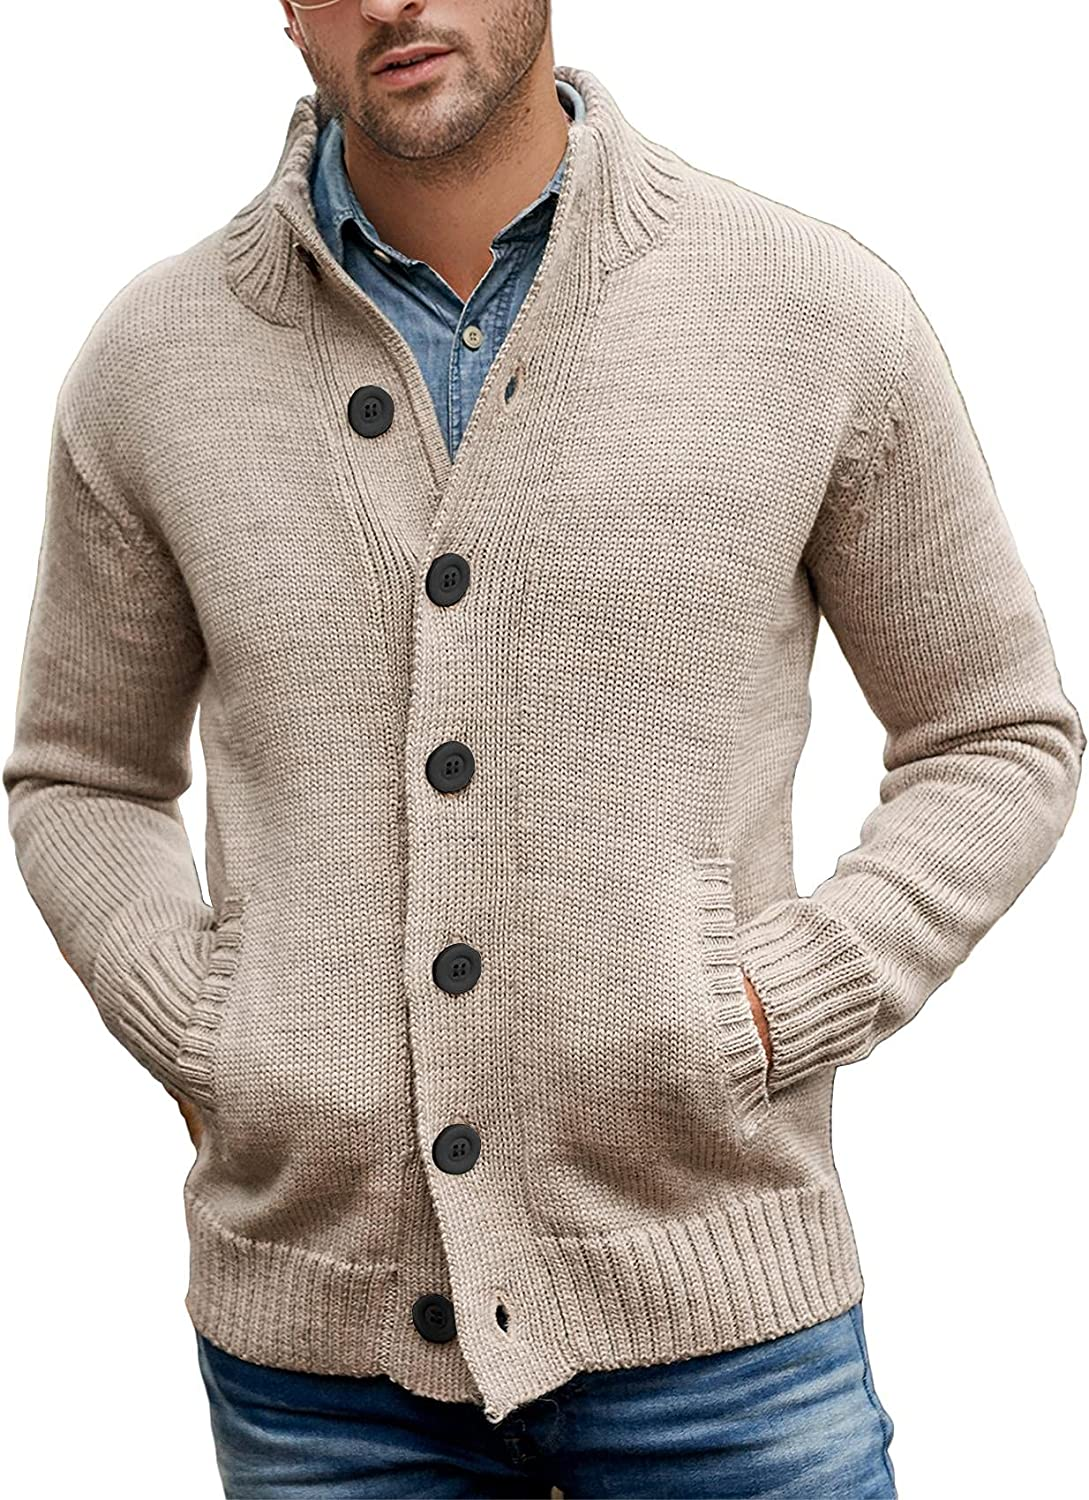 Gafeng Mens Long Sleeve Stand Collar Cardigan Sweaters Button Down Knitted Sweater